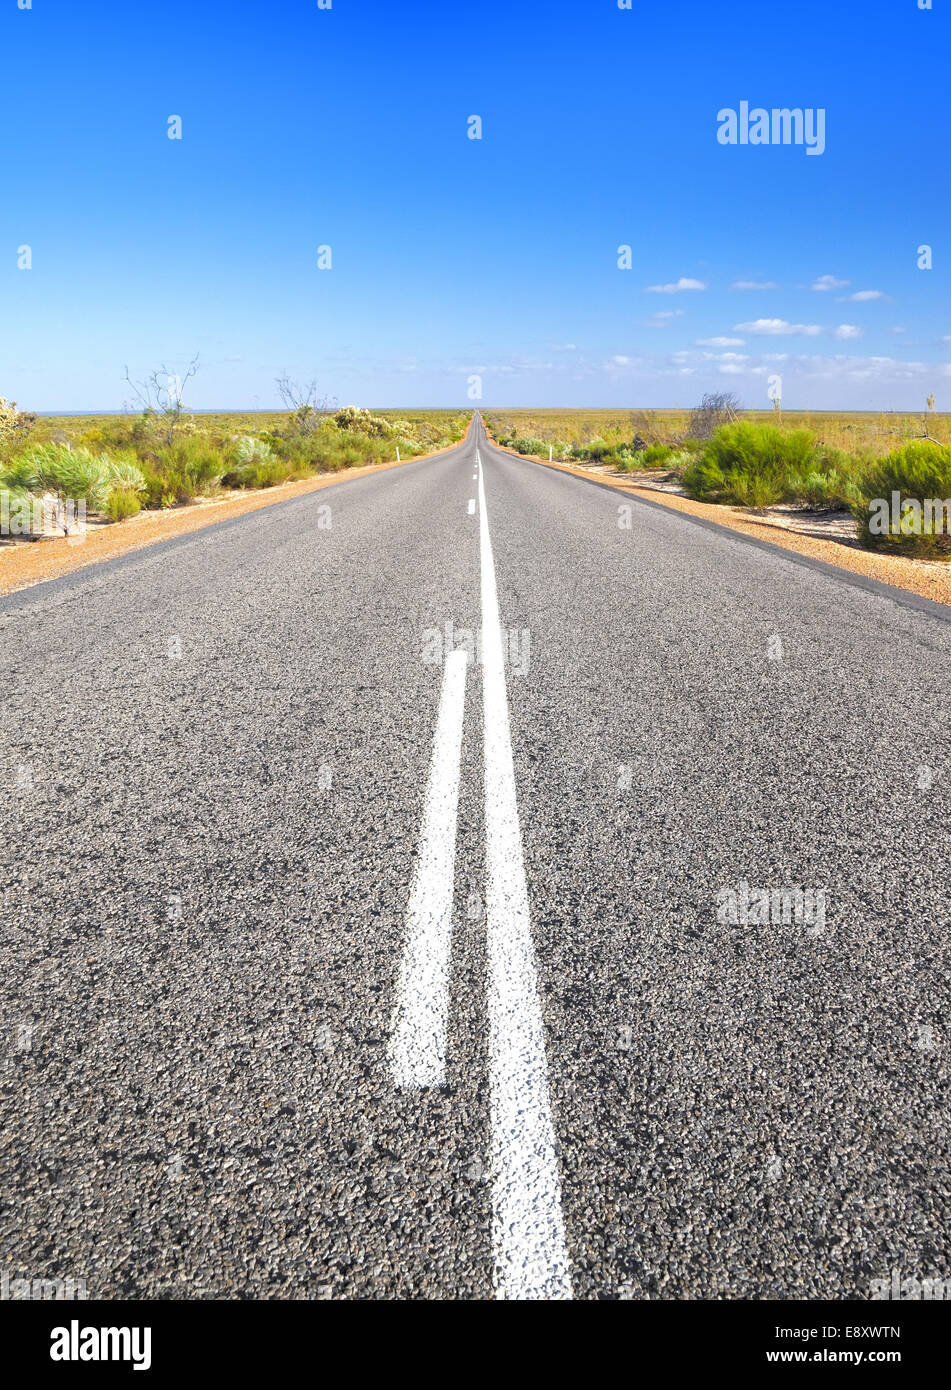 Road to Oz - Stock Image